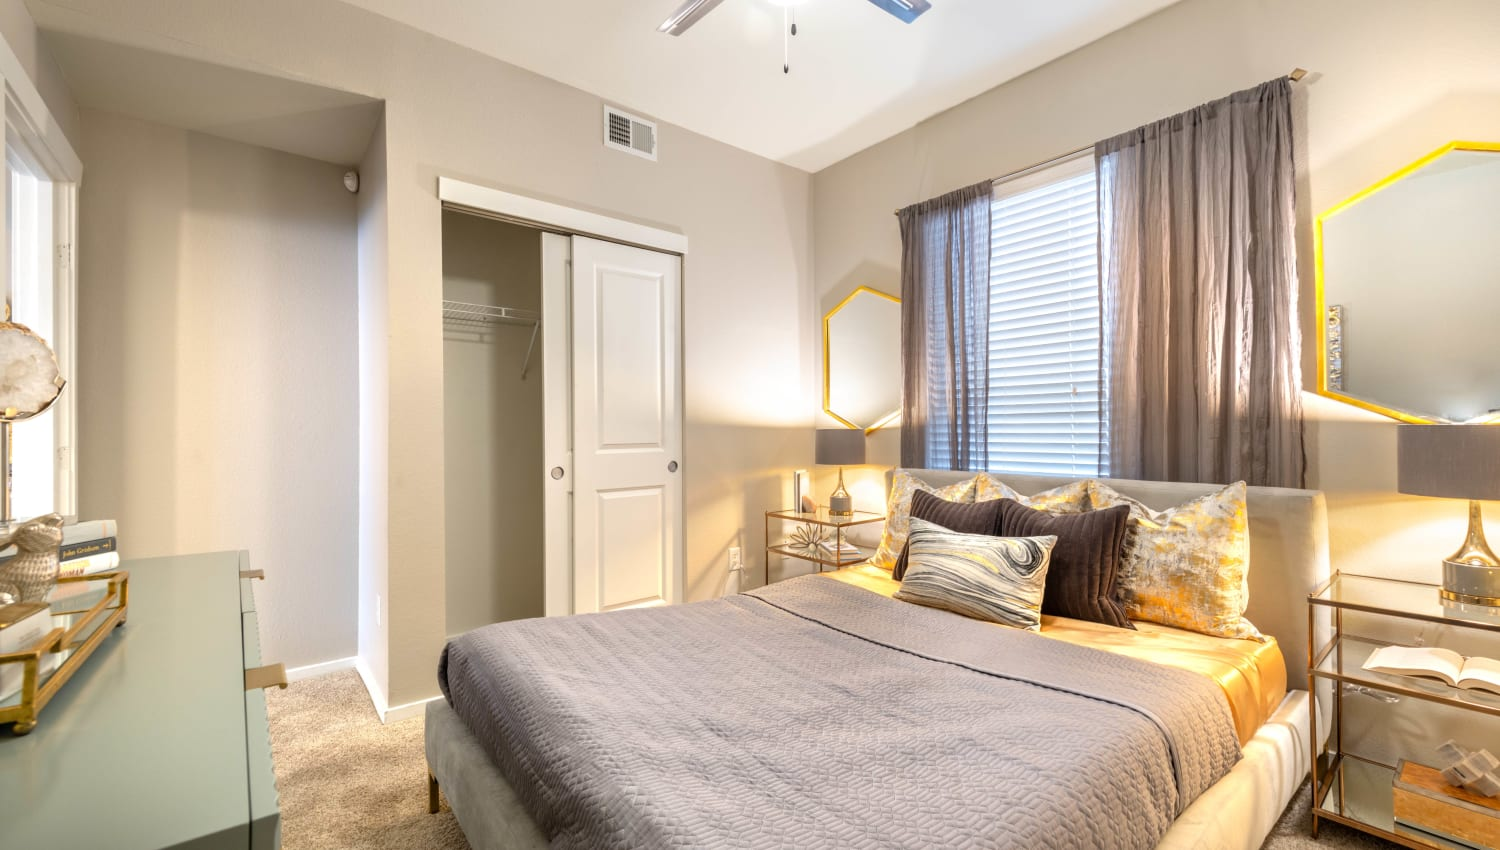 Model apartment's master bedroom with ample closet space and a large bay window at Olympus Solaire in Albuquerque, New Mexico